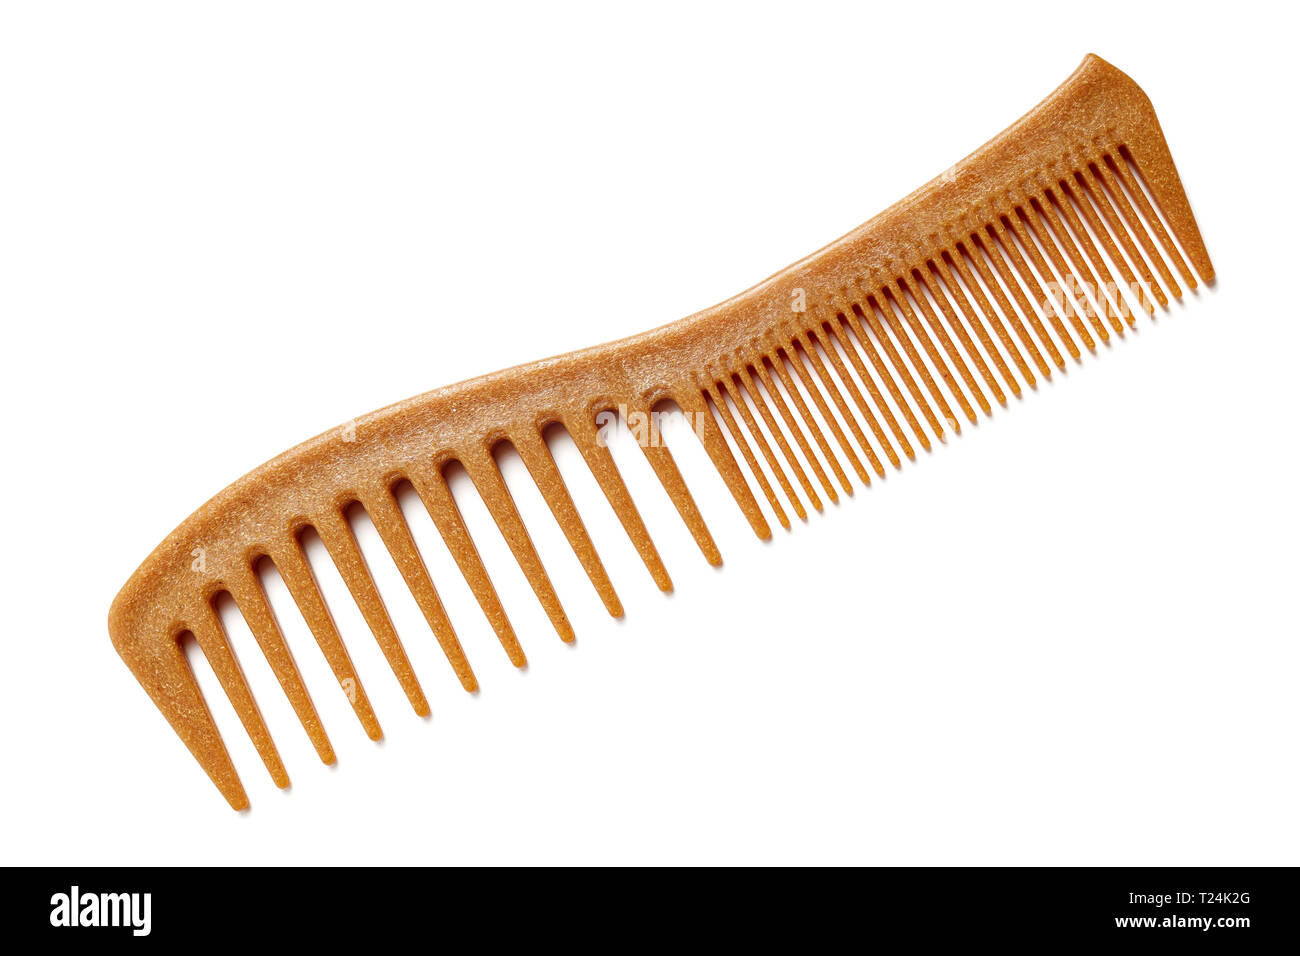 Natural Bamboo Hair Comb On White Background - Stock Image